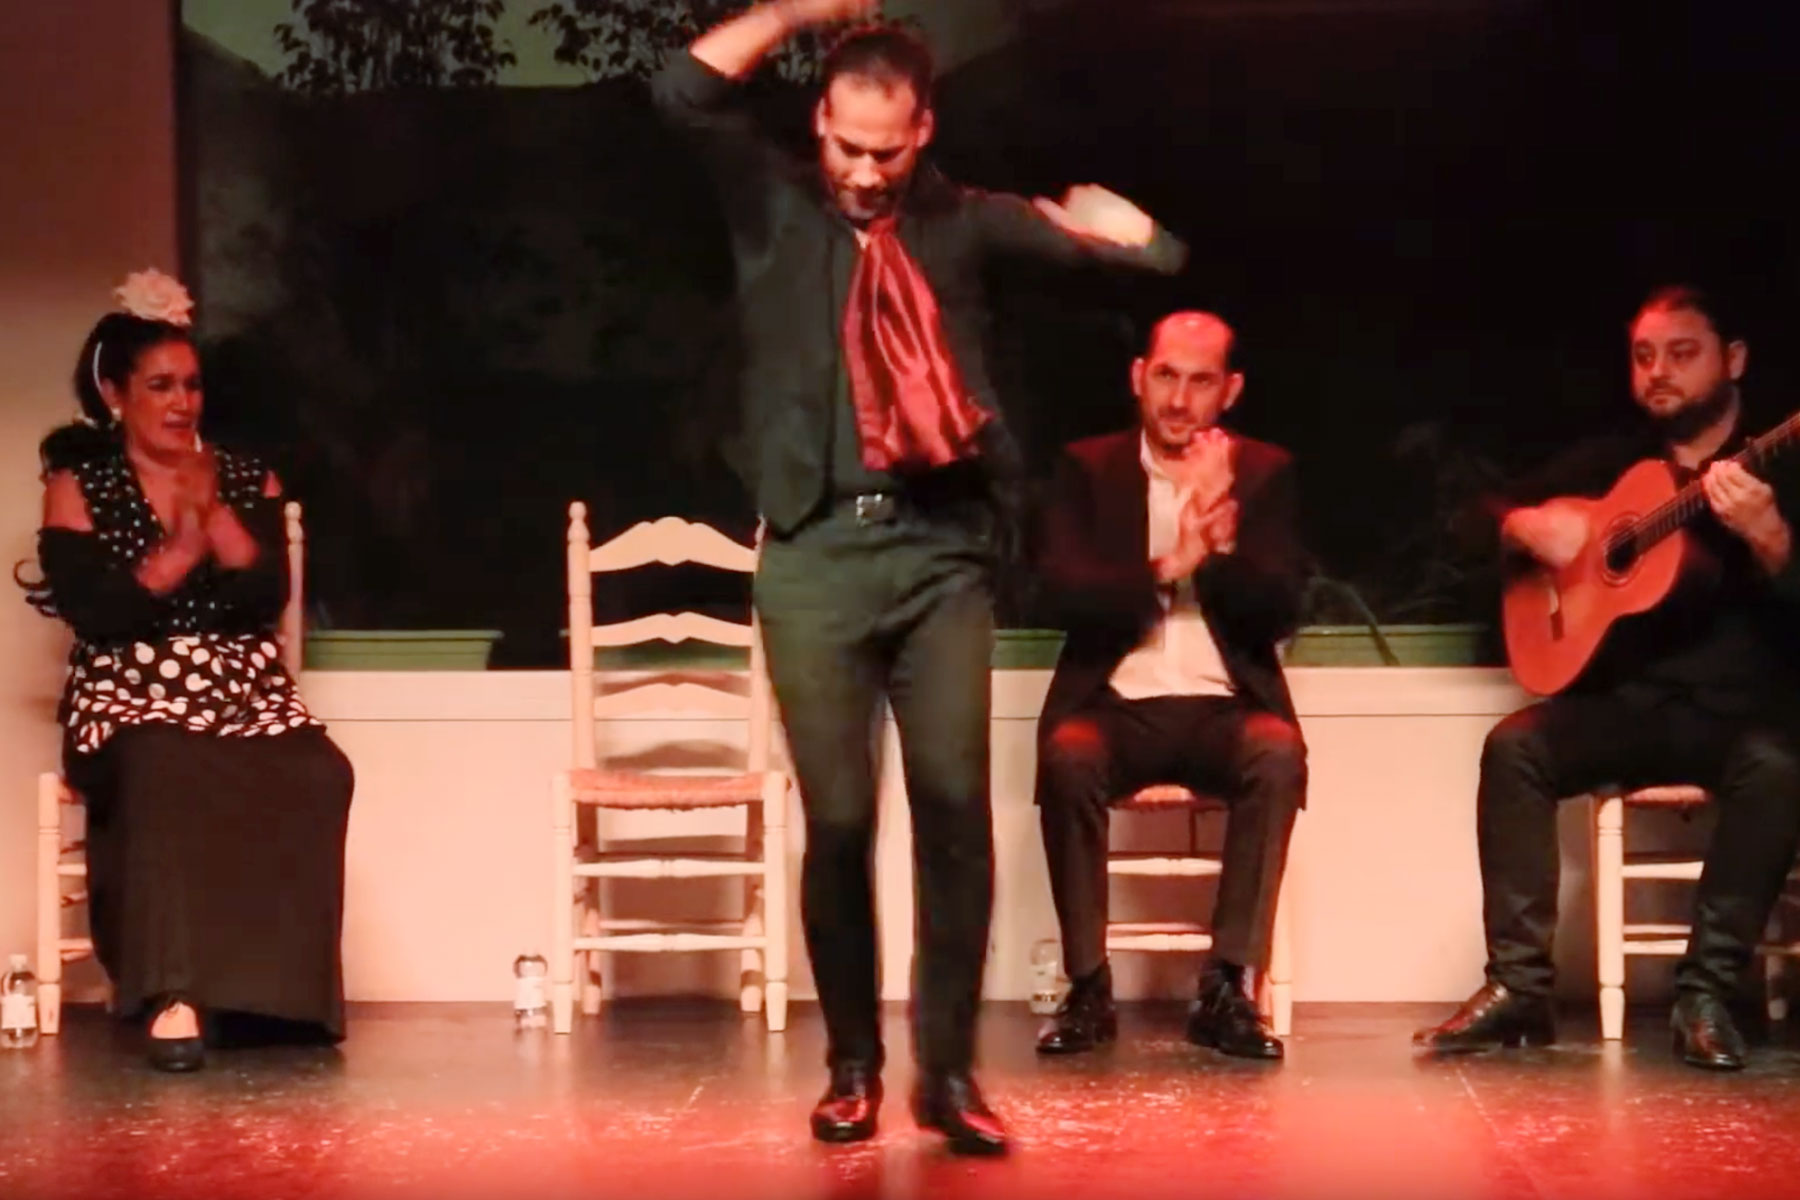 Video del Show flamenco en Tablao la Cantaora Sevilla